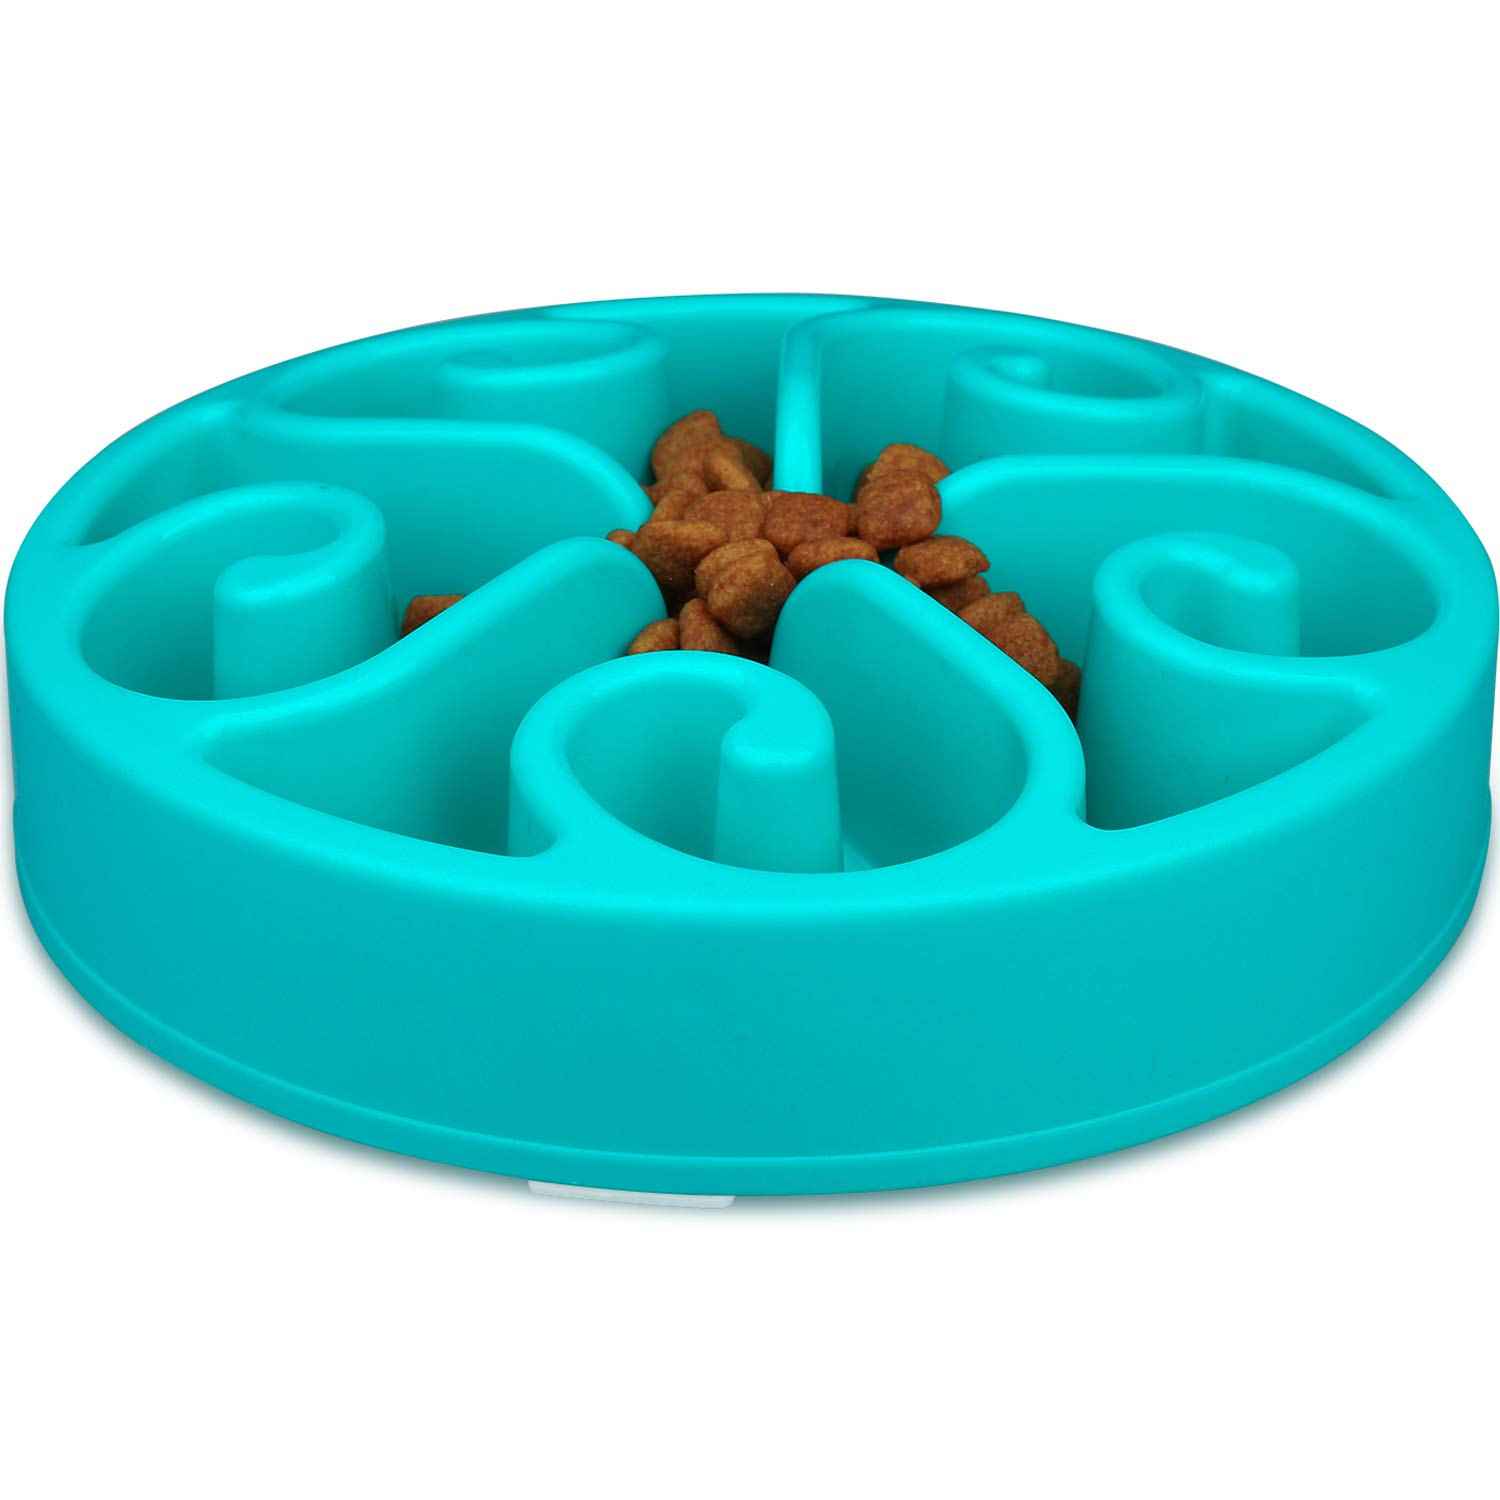 Wangstar Slow Feed Dog Bowl 8 inch Bloat Stop Dog Puzzle Bowl Maze Dog Food Water Bowl Pet Interactive Fun Feeder Slow Bowl SkidStop Design (bluee)